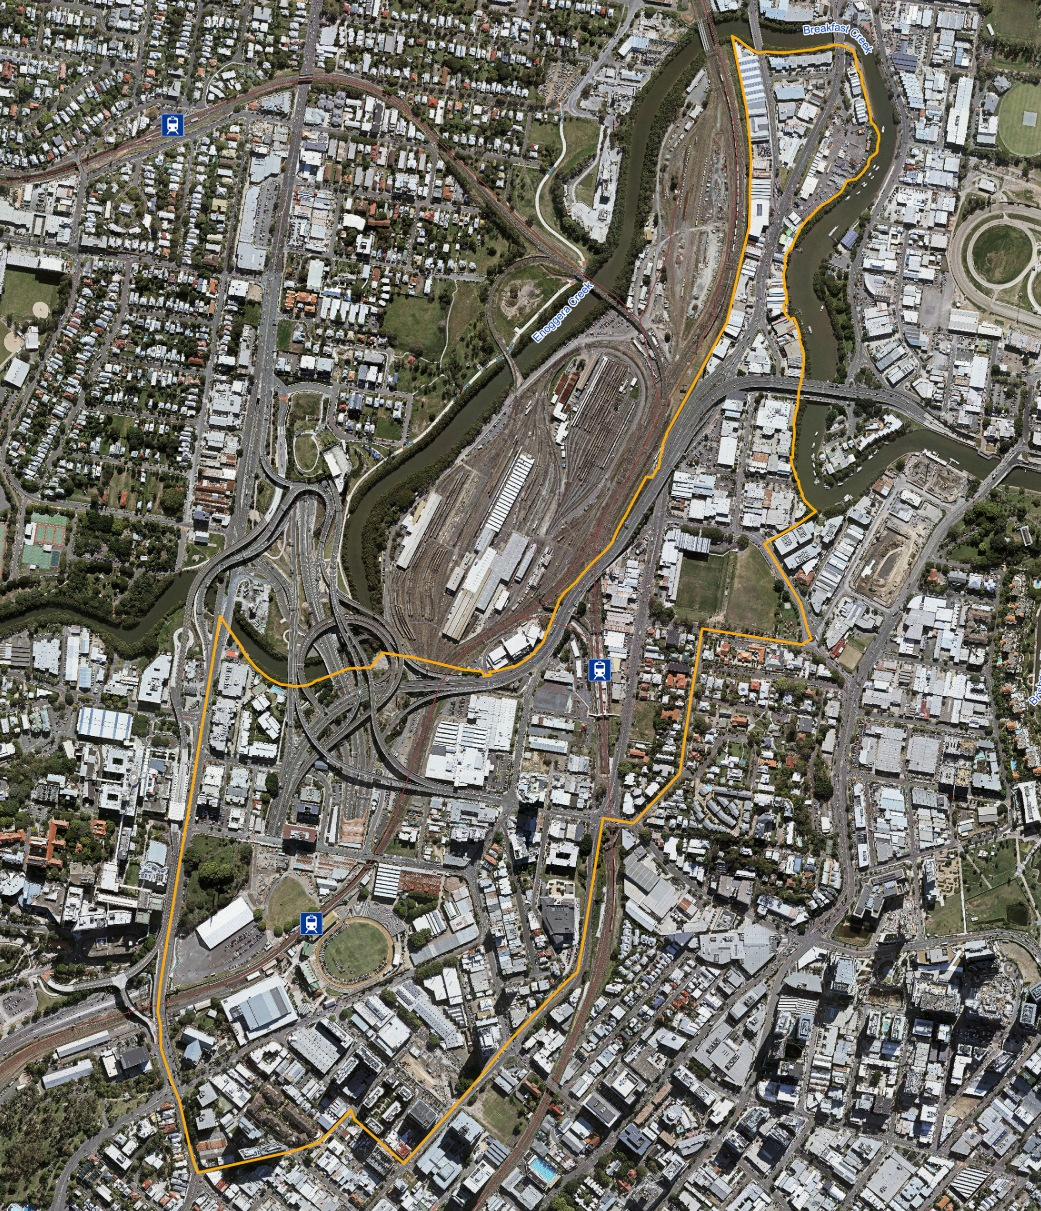 The PDA is roughly 108 hectares bound by Bowen Bridge Road and Enoggera Creek to the west, the Mayne Rail Yards and Breakfast Creek to the north, Water Street and St Pauls Terrace to the south and Breakfast Creek, Cintra Road and Markwell Street to the east.